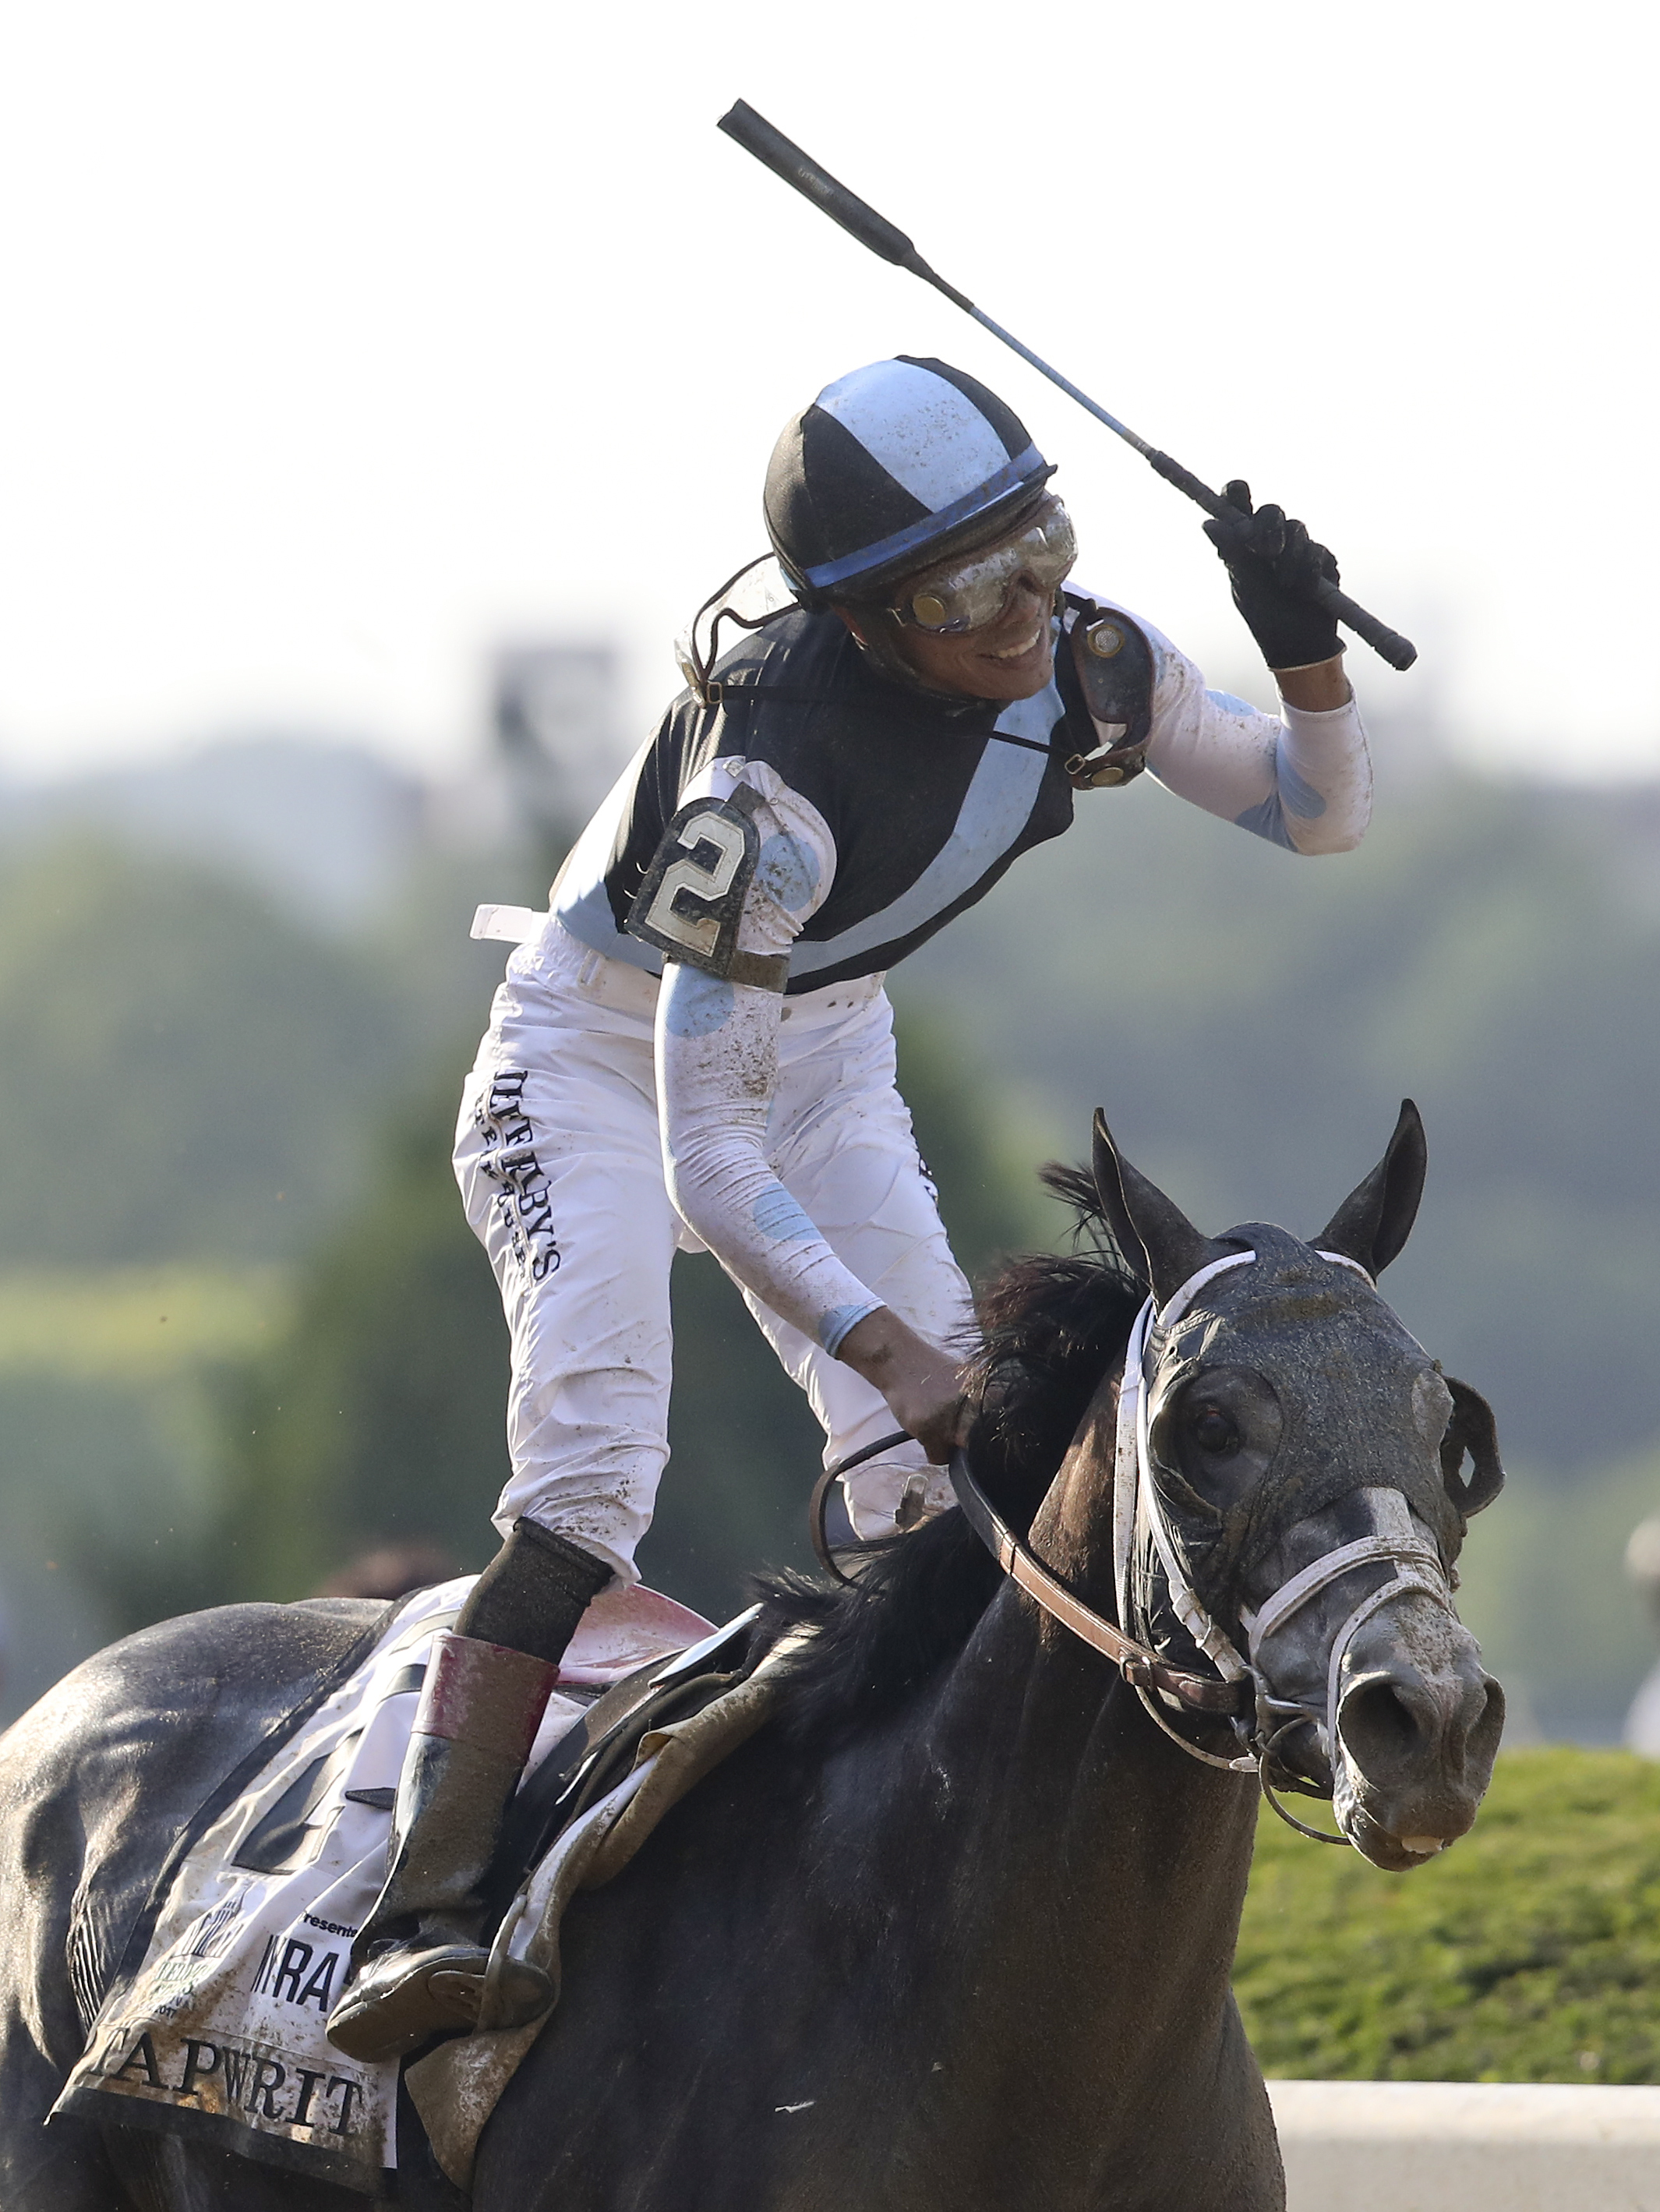 Jose Ortiz celebrates after riding Tapwrit to victory in the 149th running of the Belmont Stakes horse race, Saturday, June 10, 2017, in Elmont, N.Y. (AP Photo/Mary Altaffer)